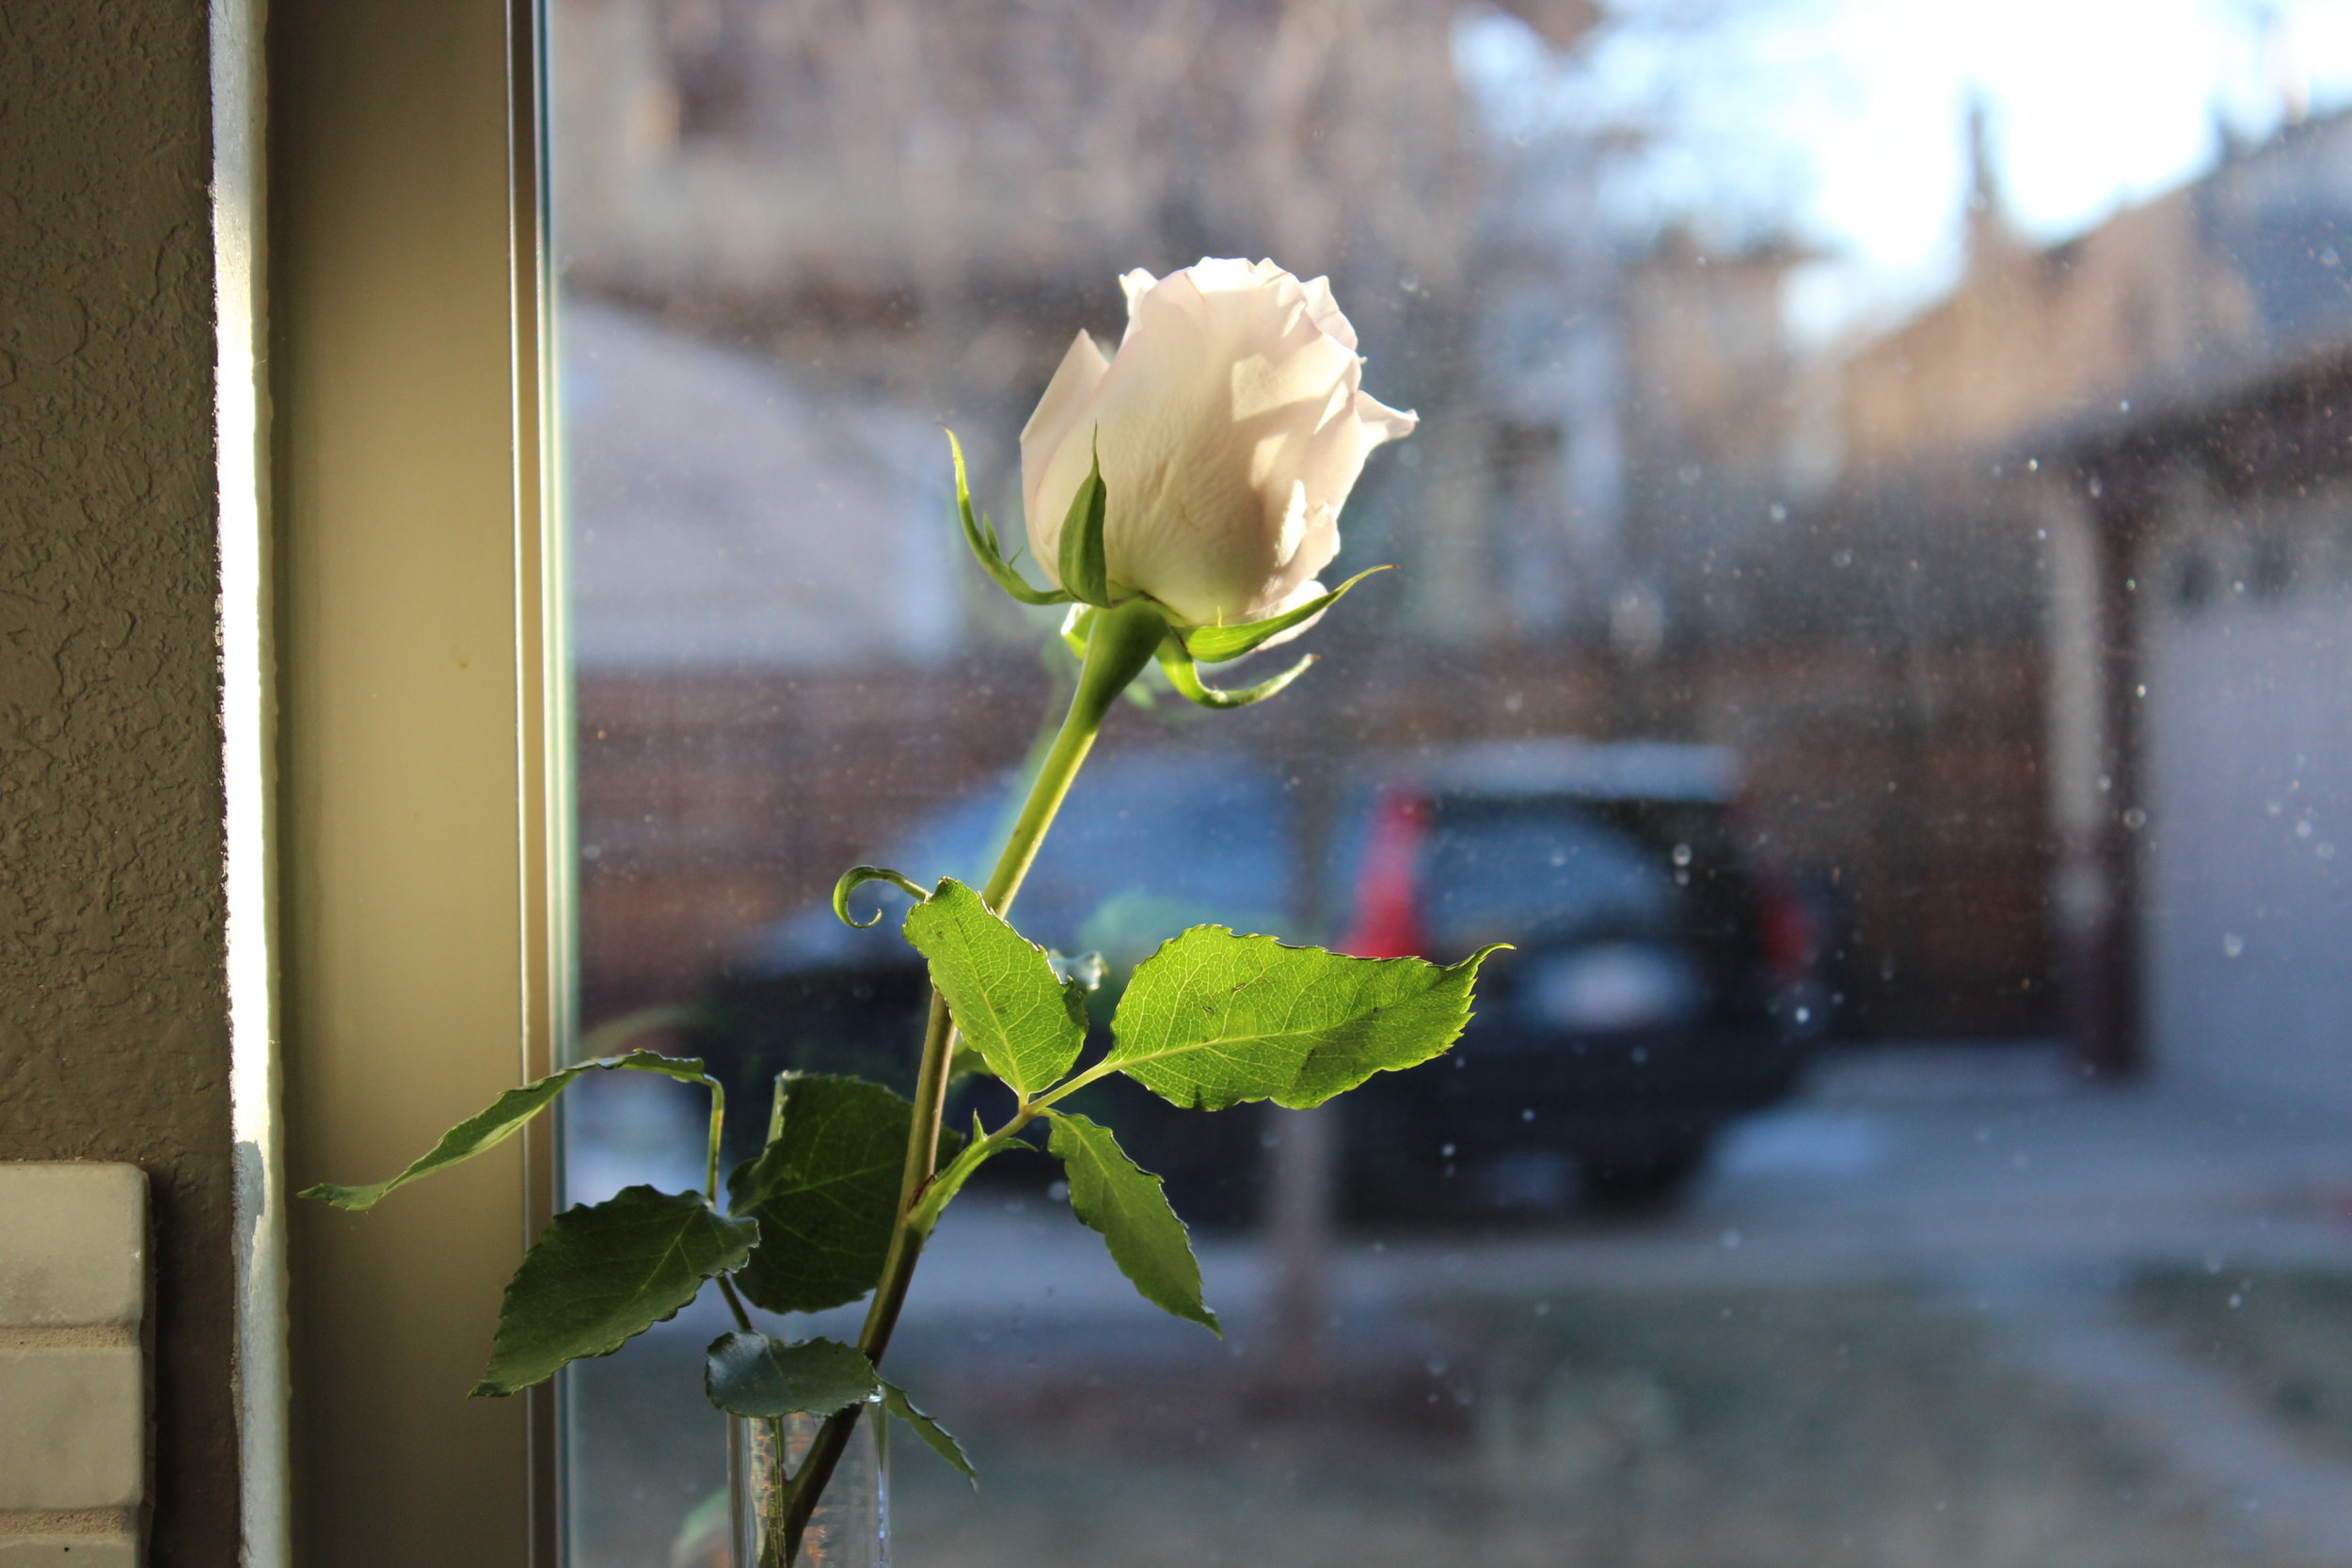 Rose in a kitchen window